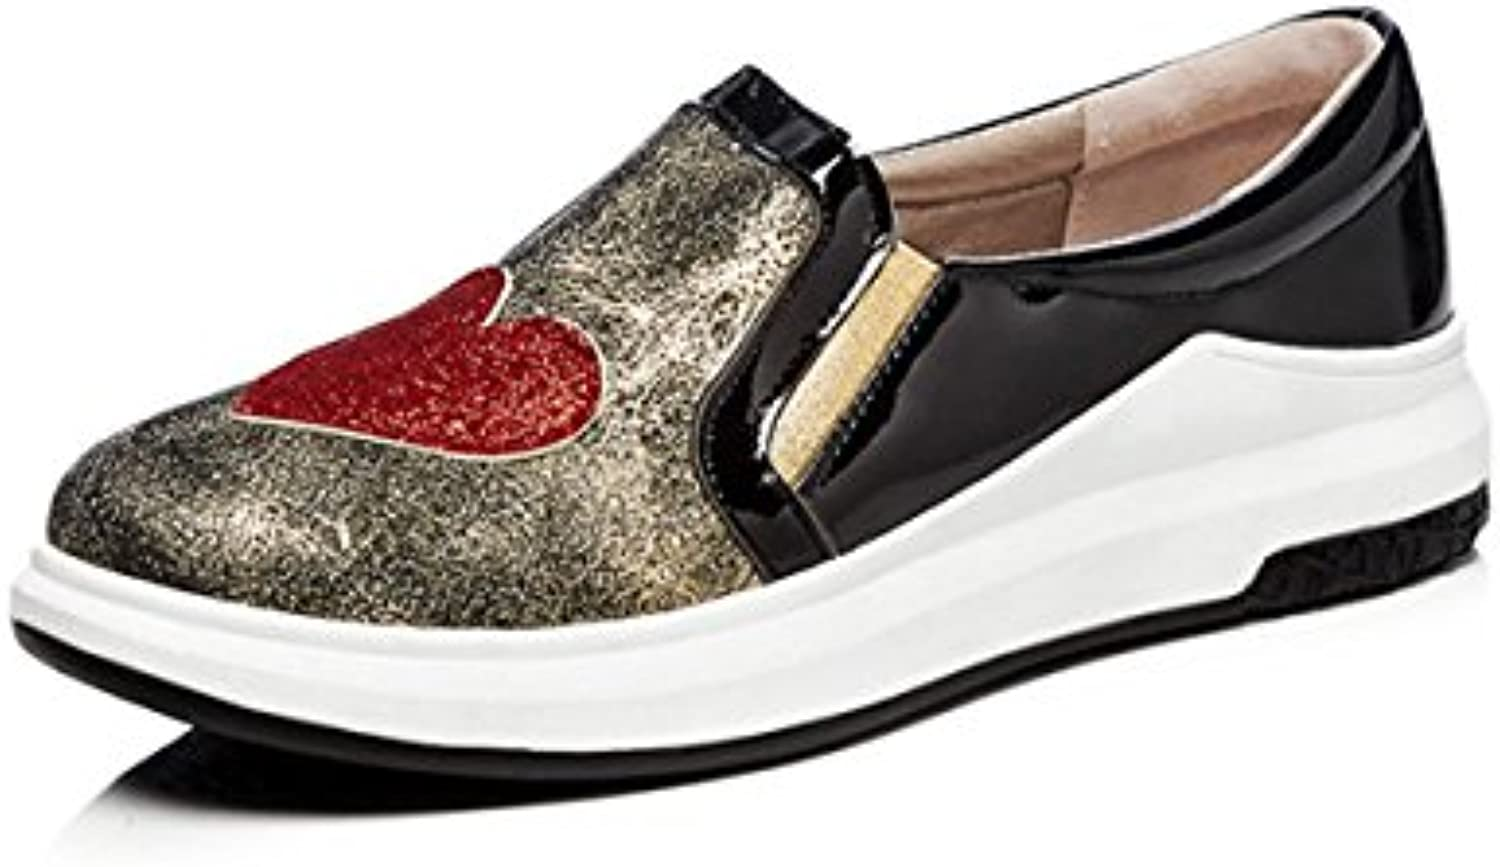 Yiye Damen Flach Mokassins No.898 Pu Leder Modisch Loafer Schuhe